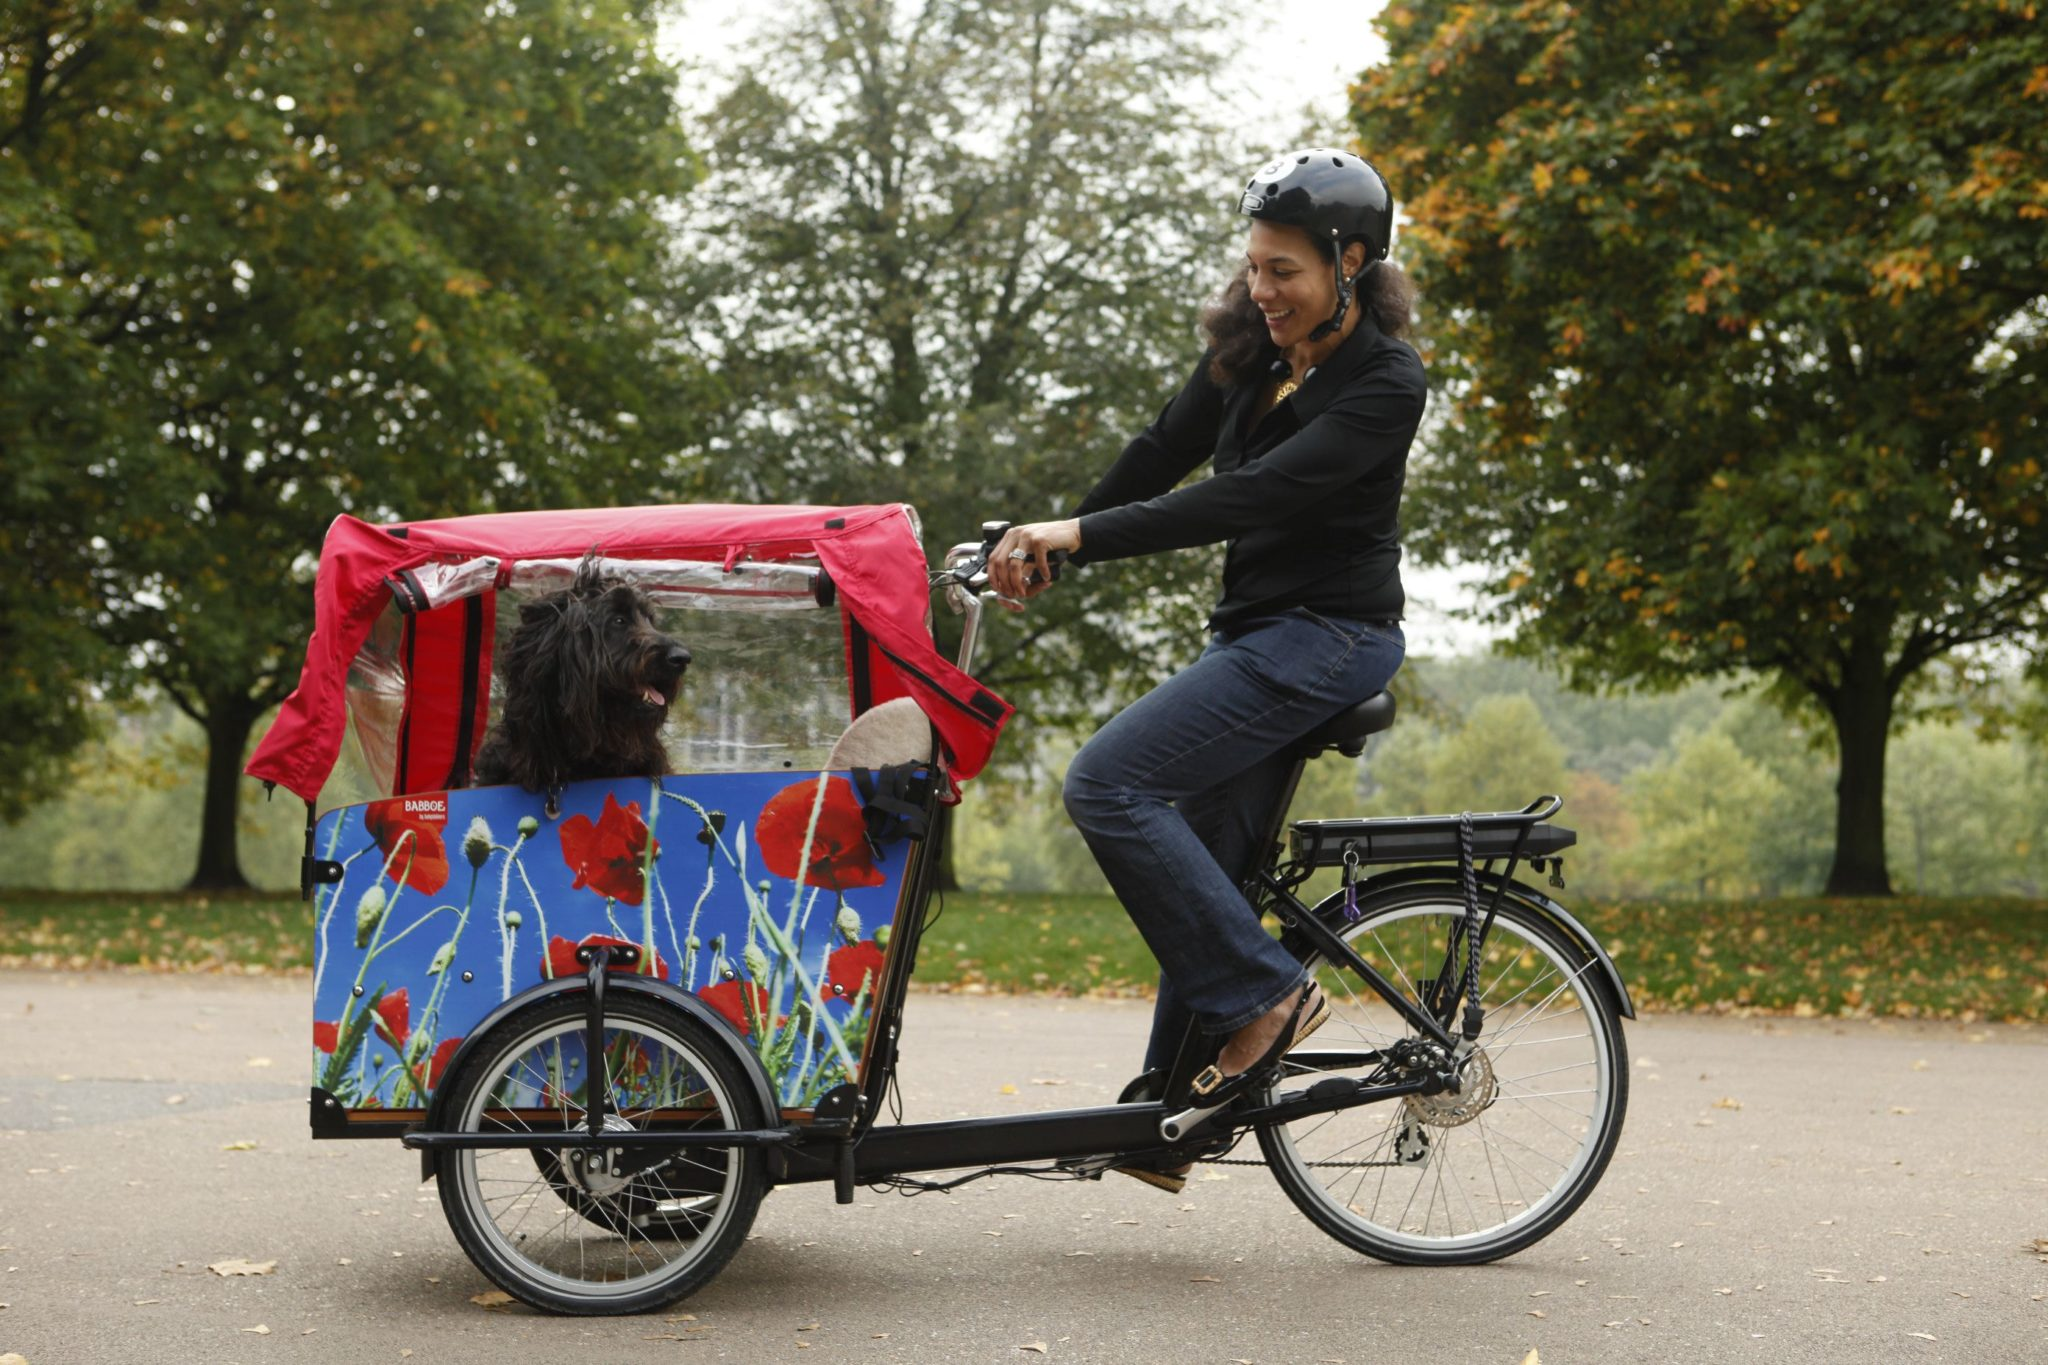 Cargo Bikes The Largest Online Cargo Bike Store